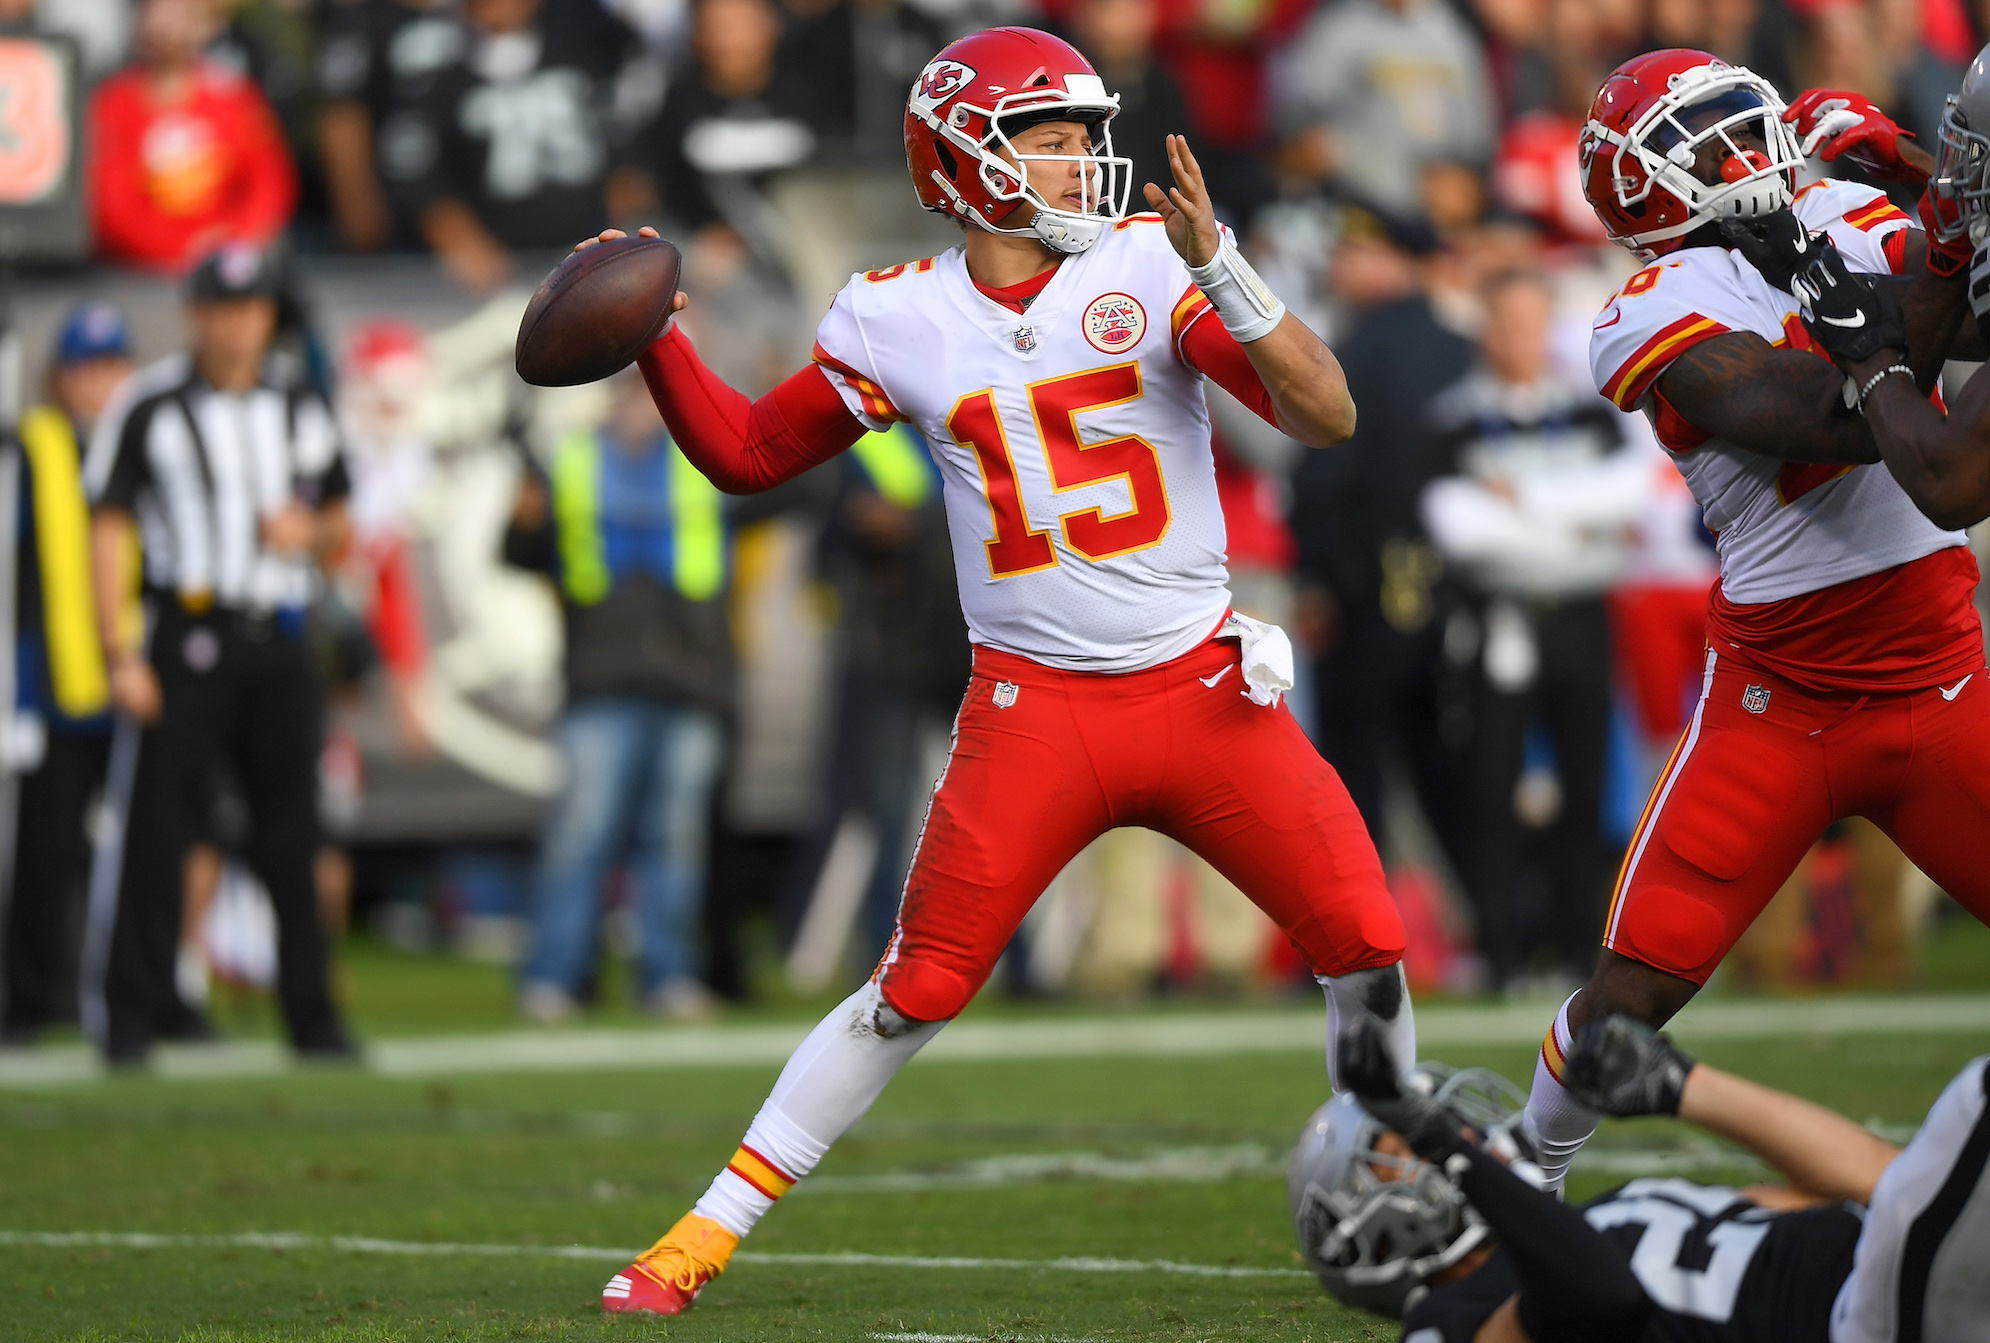 Patrick Mahomes might be the most gifted QB in NFL history, and now he's adding a never-before-seen wrinkle to his passing game.